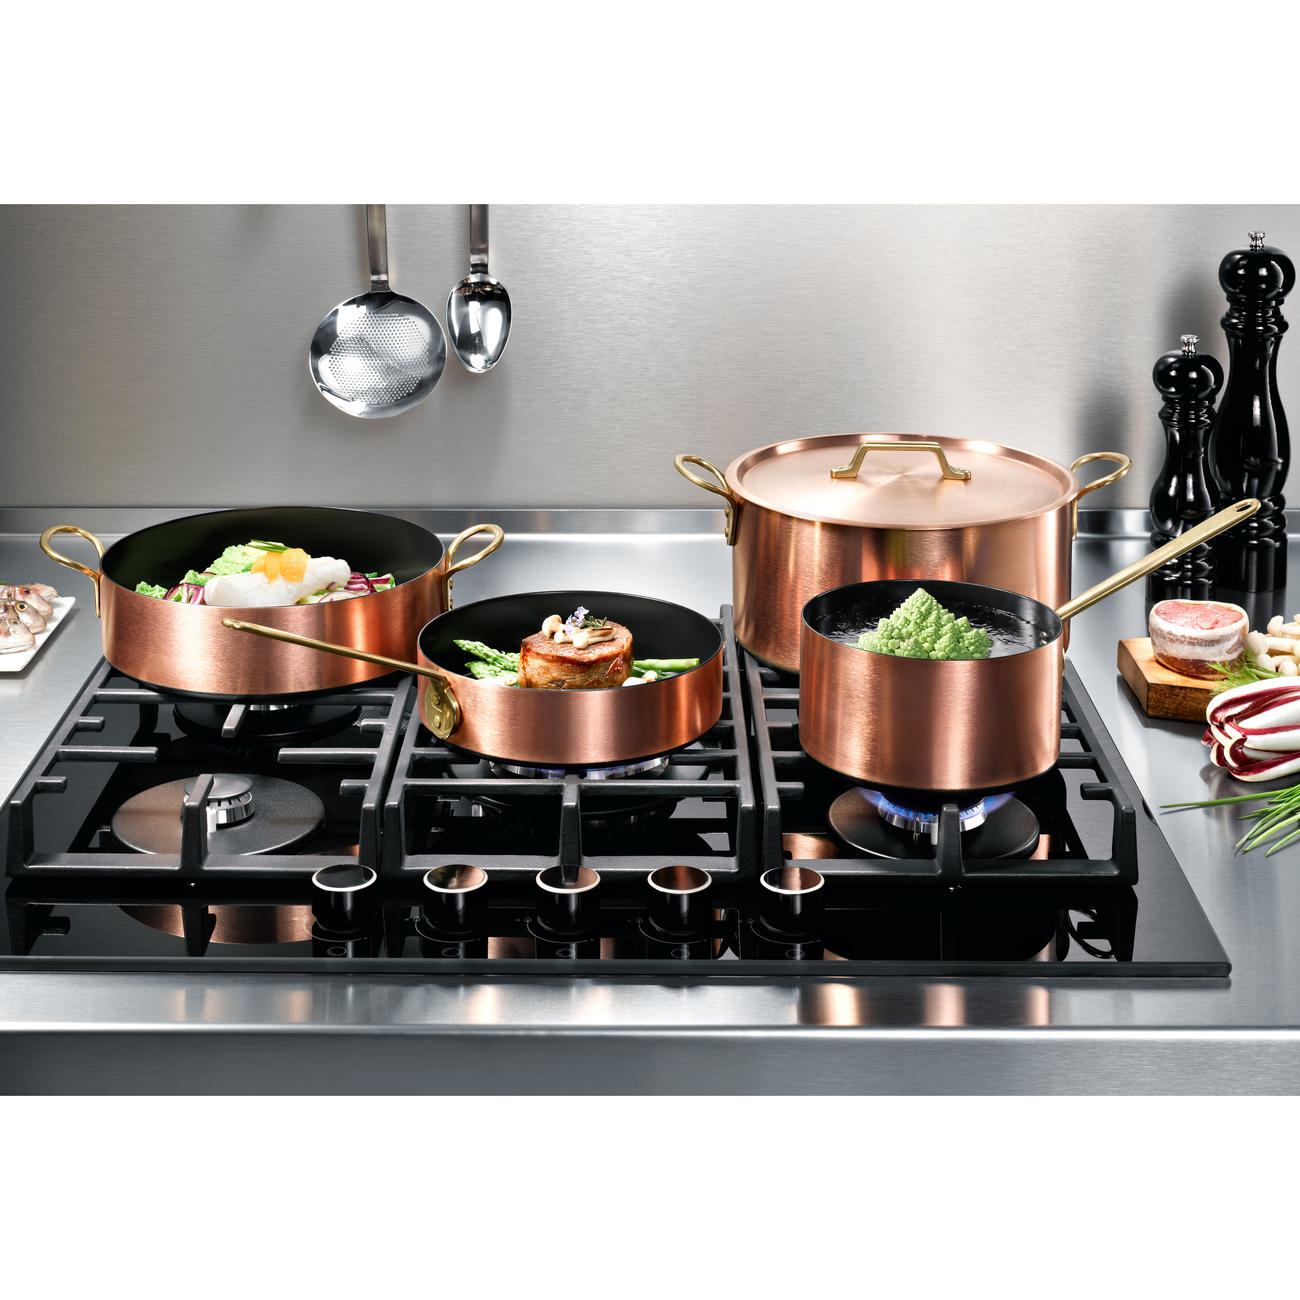 Induction Copper Cookware 3 Year Product Guarantee